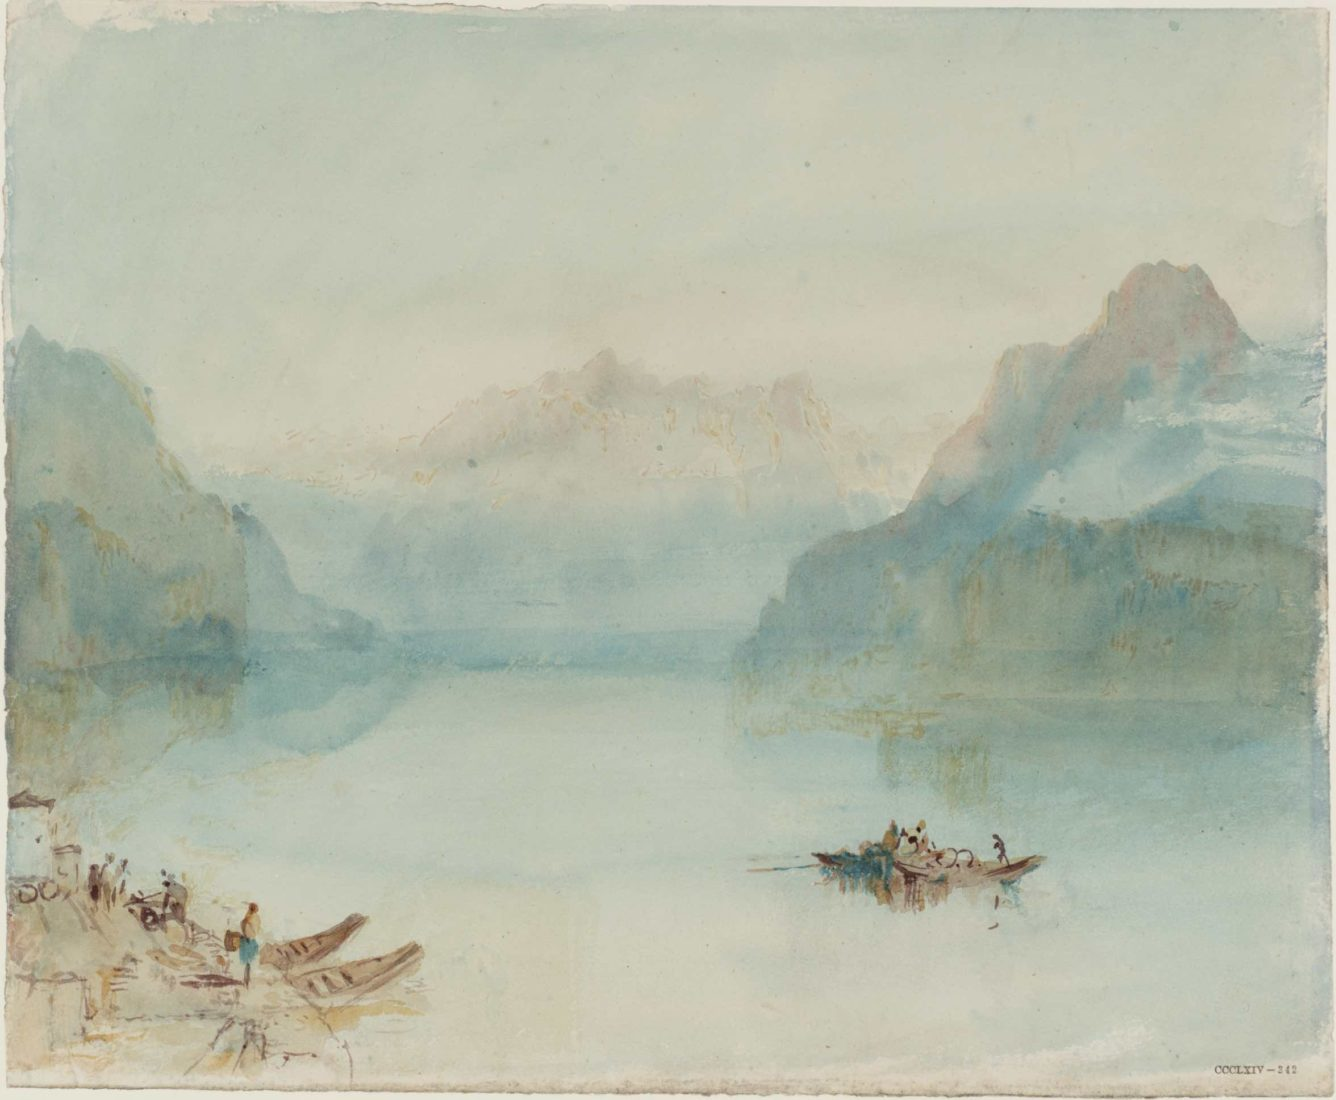 William Turner, Lake Lucerne: The Bay of Uri, from Brunnen